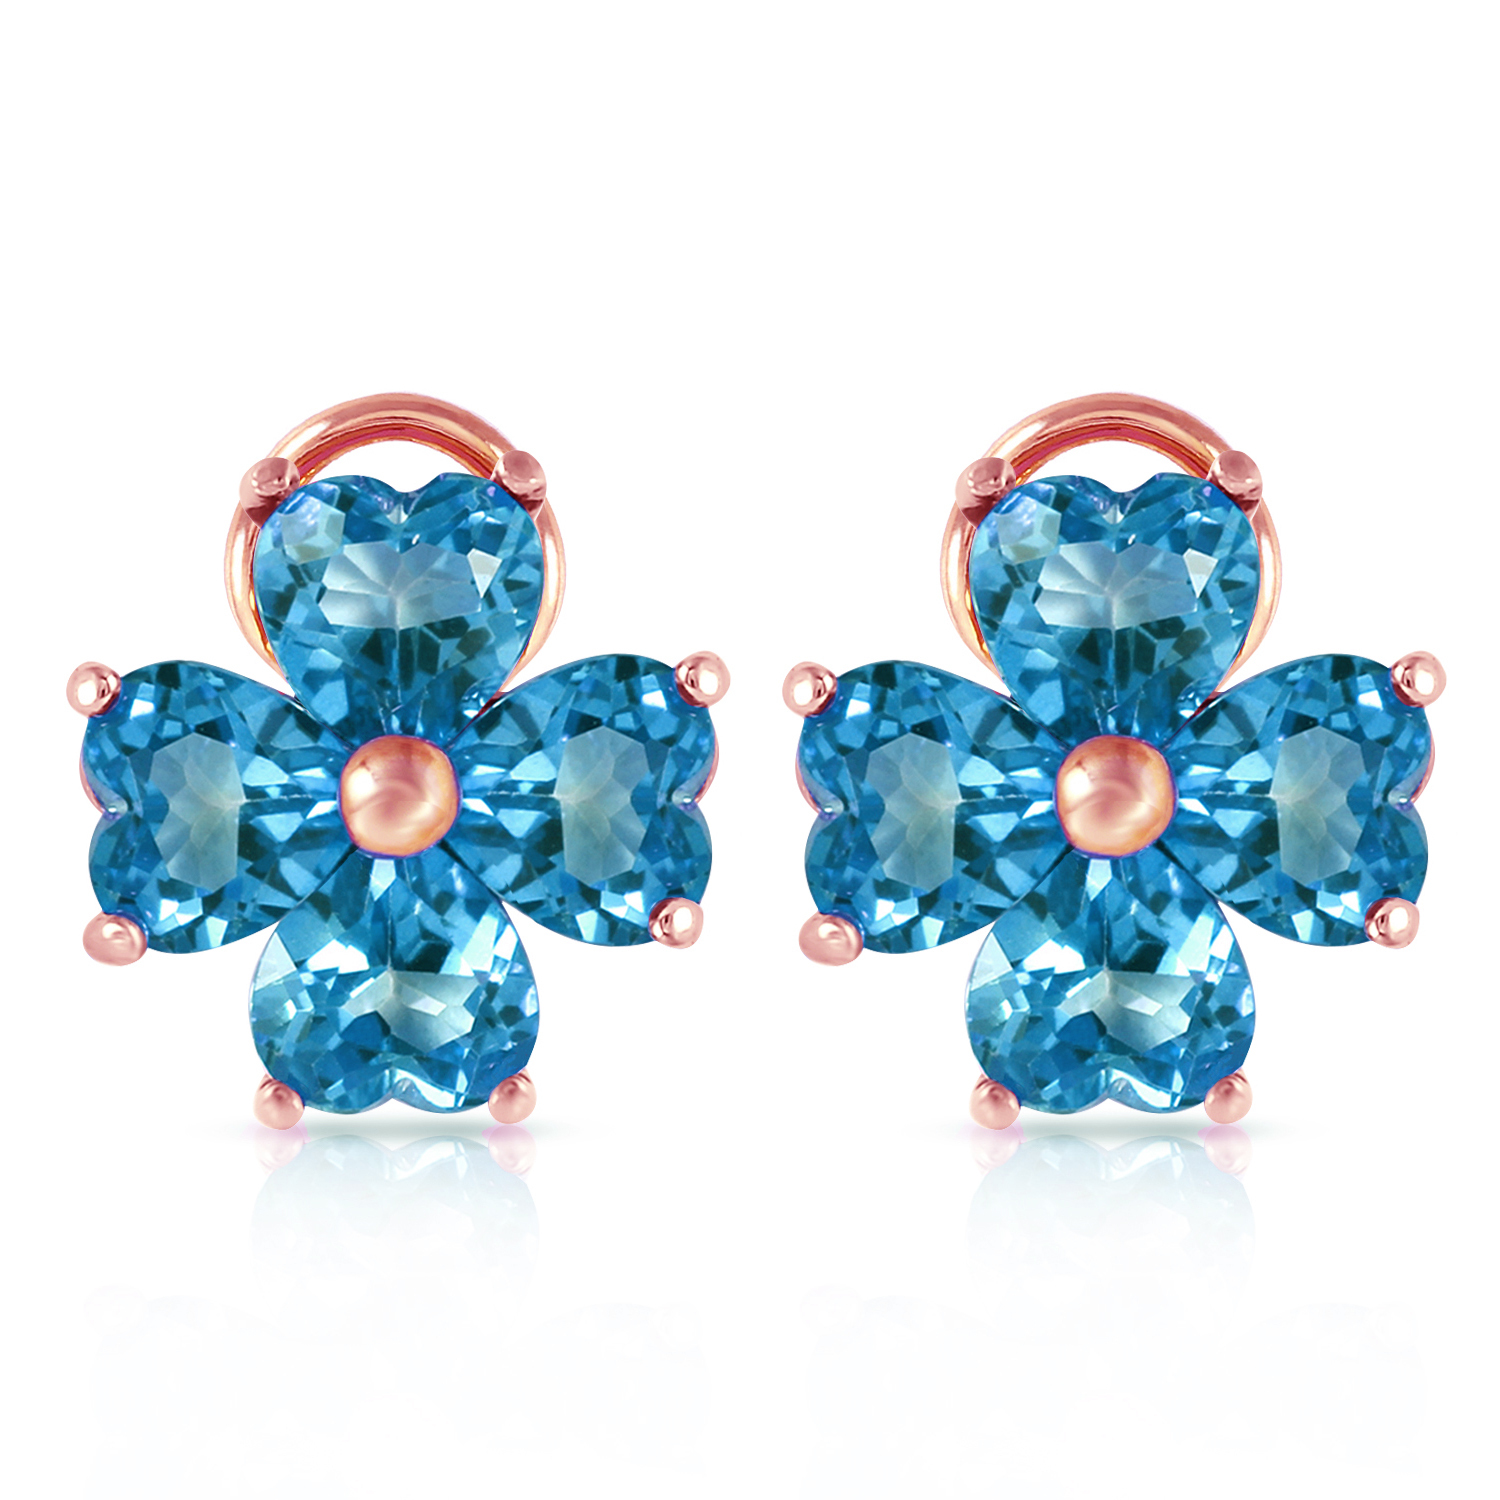 Primary image for 7.6 Carat 14K Solid Rose Gold Heart Cluster Blue Topaz Earrings Womens Gemstone